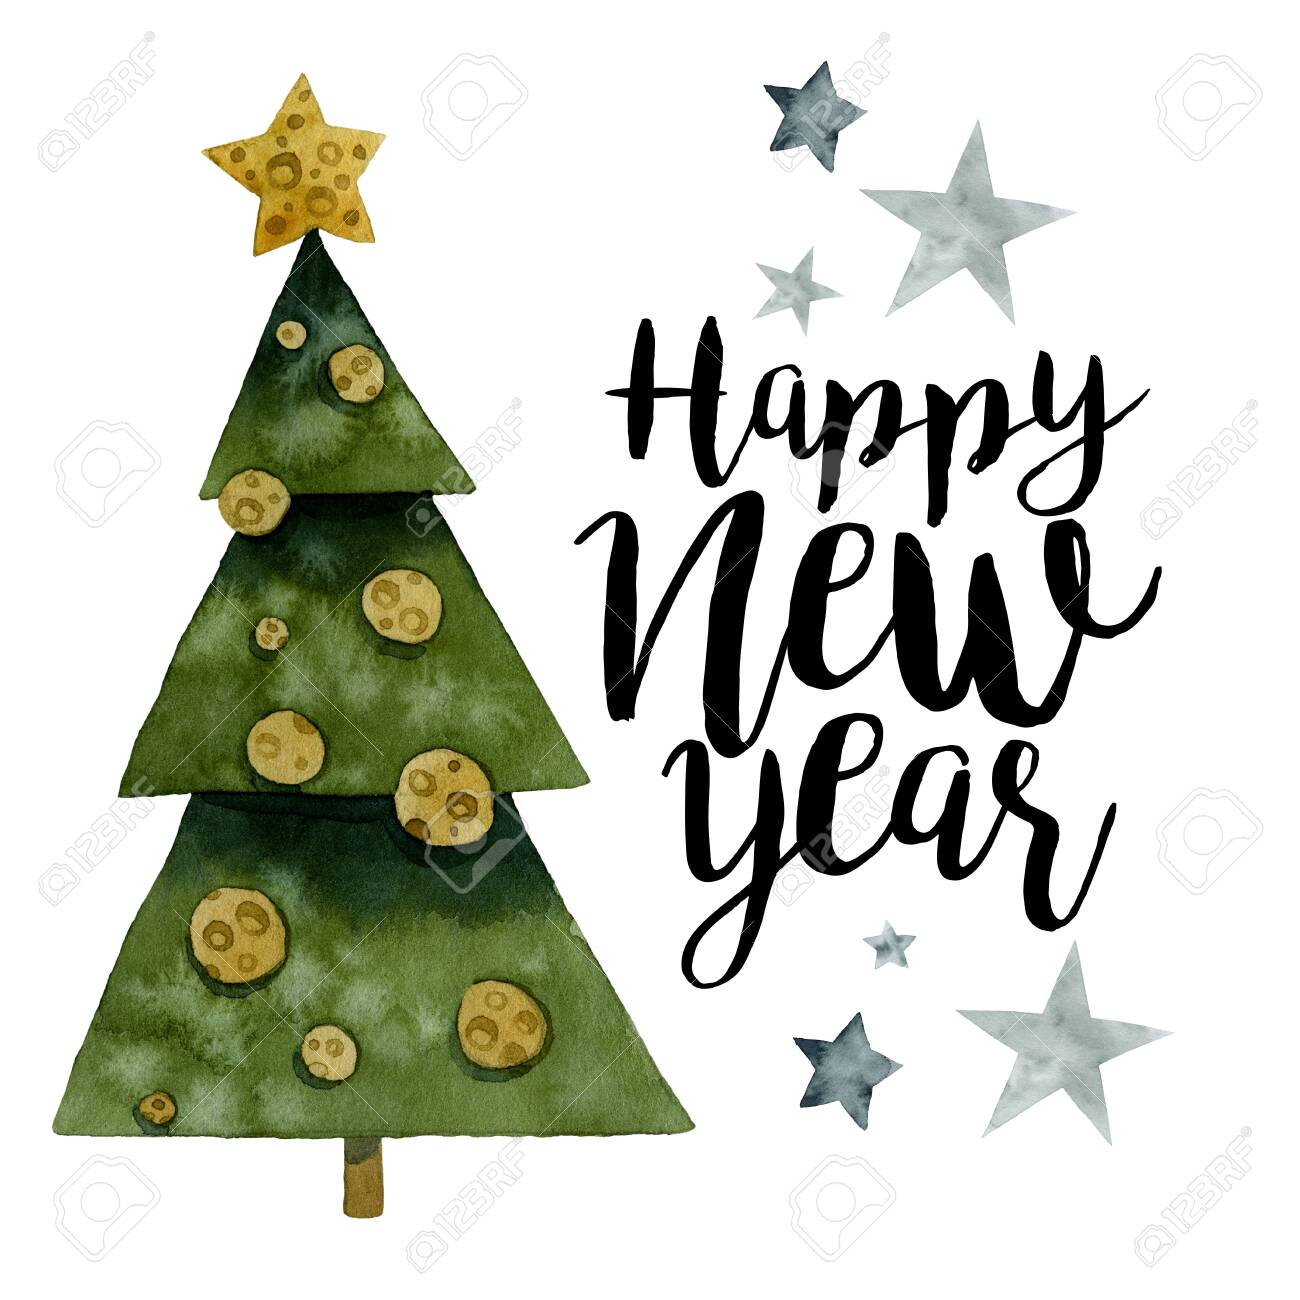 Christmas tree, decorations from cheese, Happy New Year 2020..